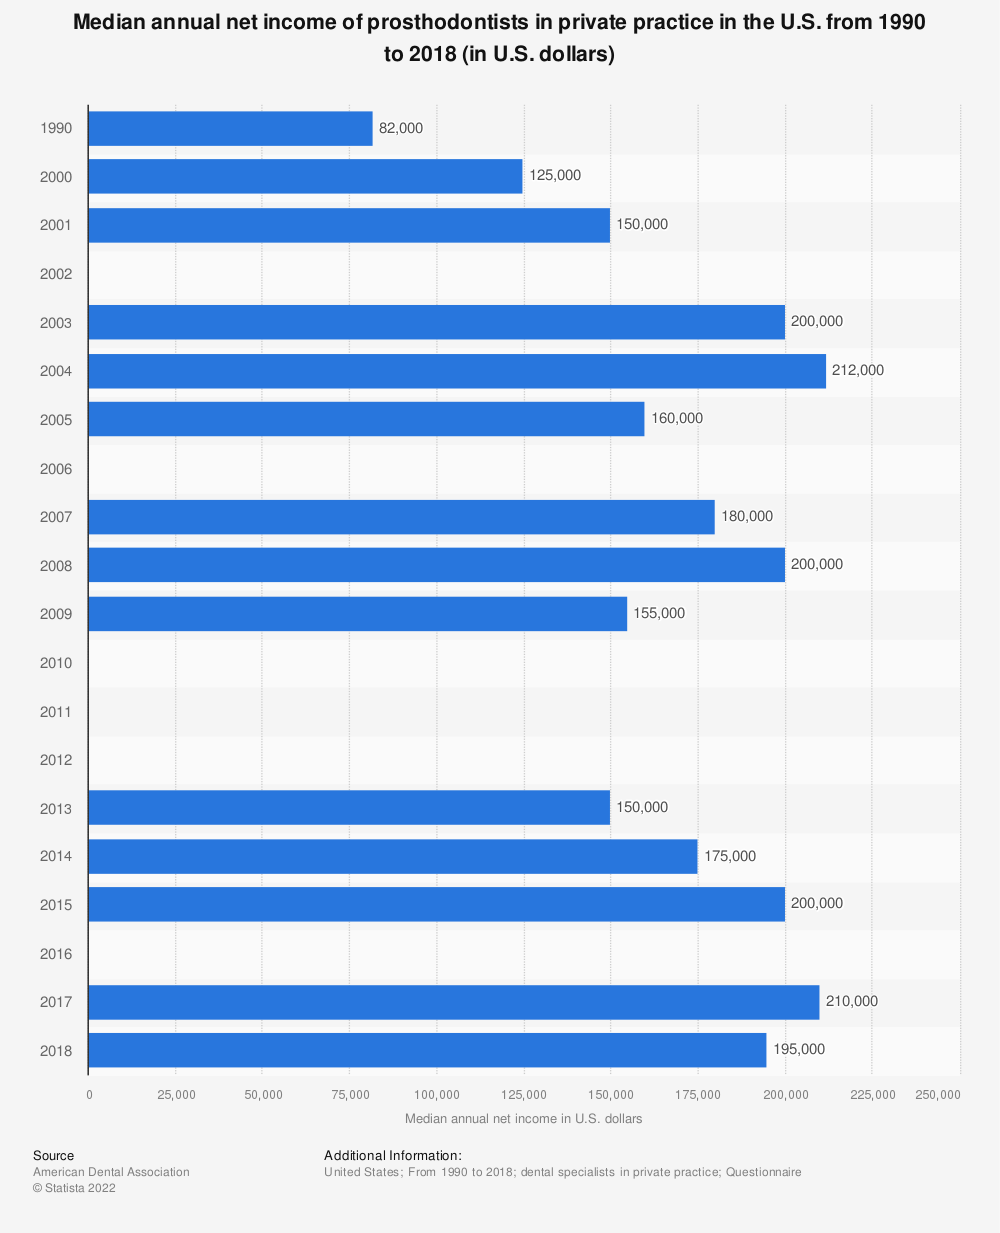 Statistic: Median annual net income of prosthodontists in private practice in the U.S. from 1990 to 2017 (in U.S. dollars) | Statista